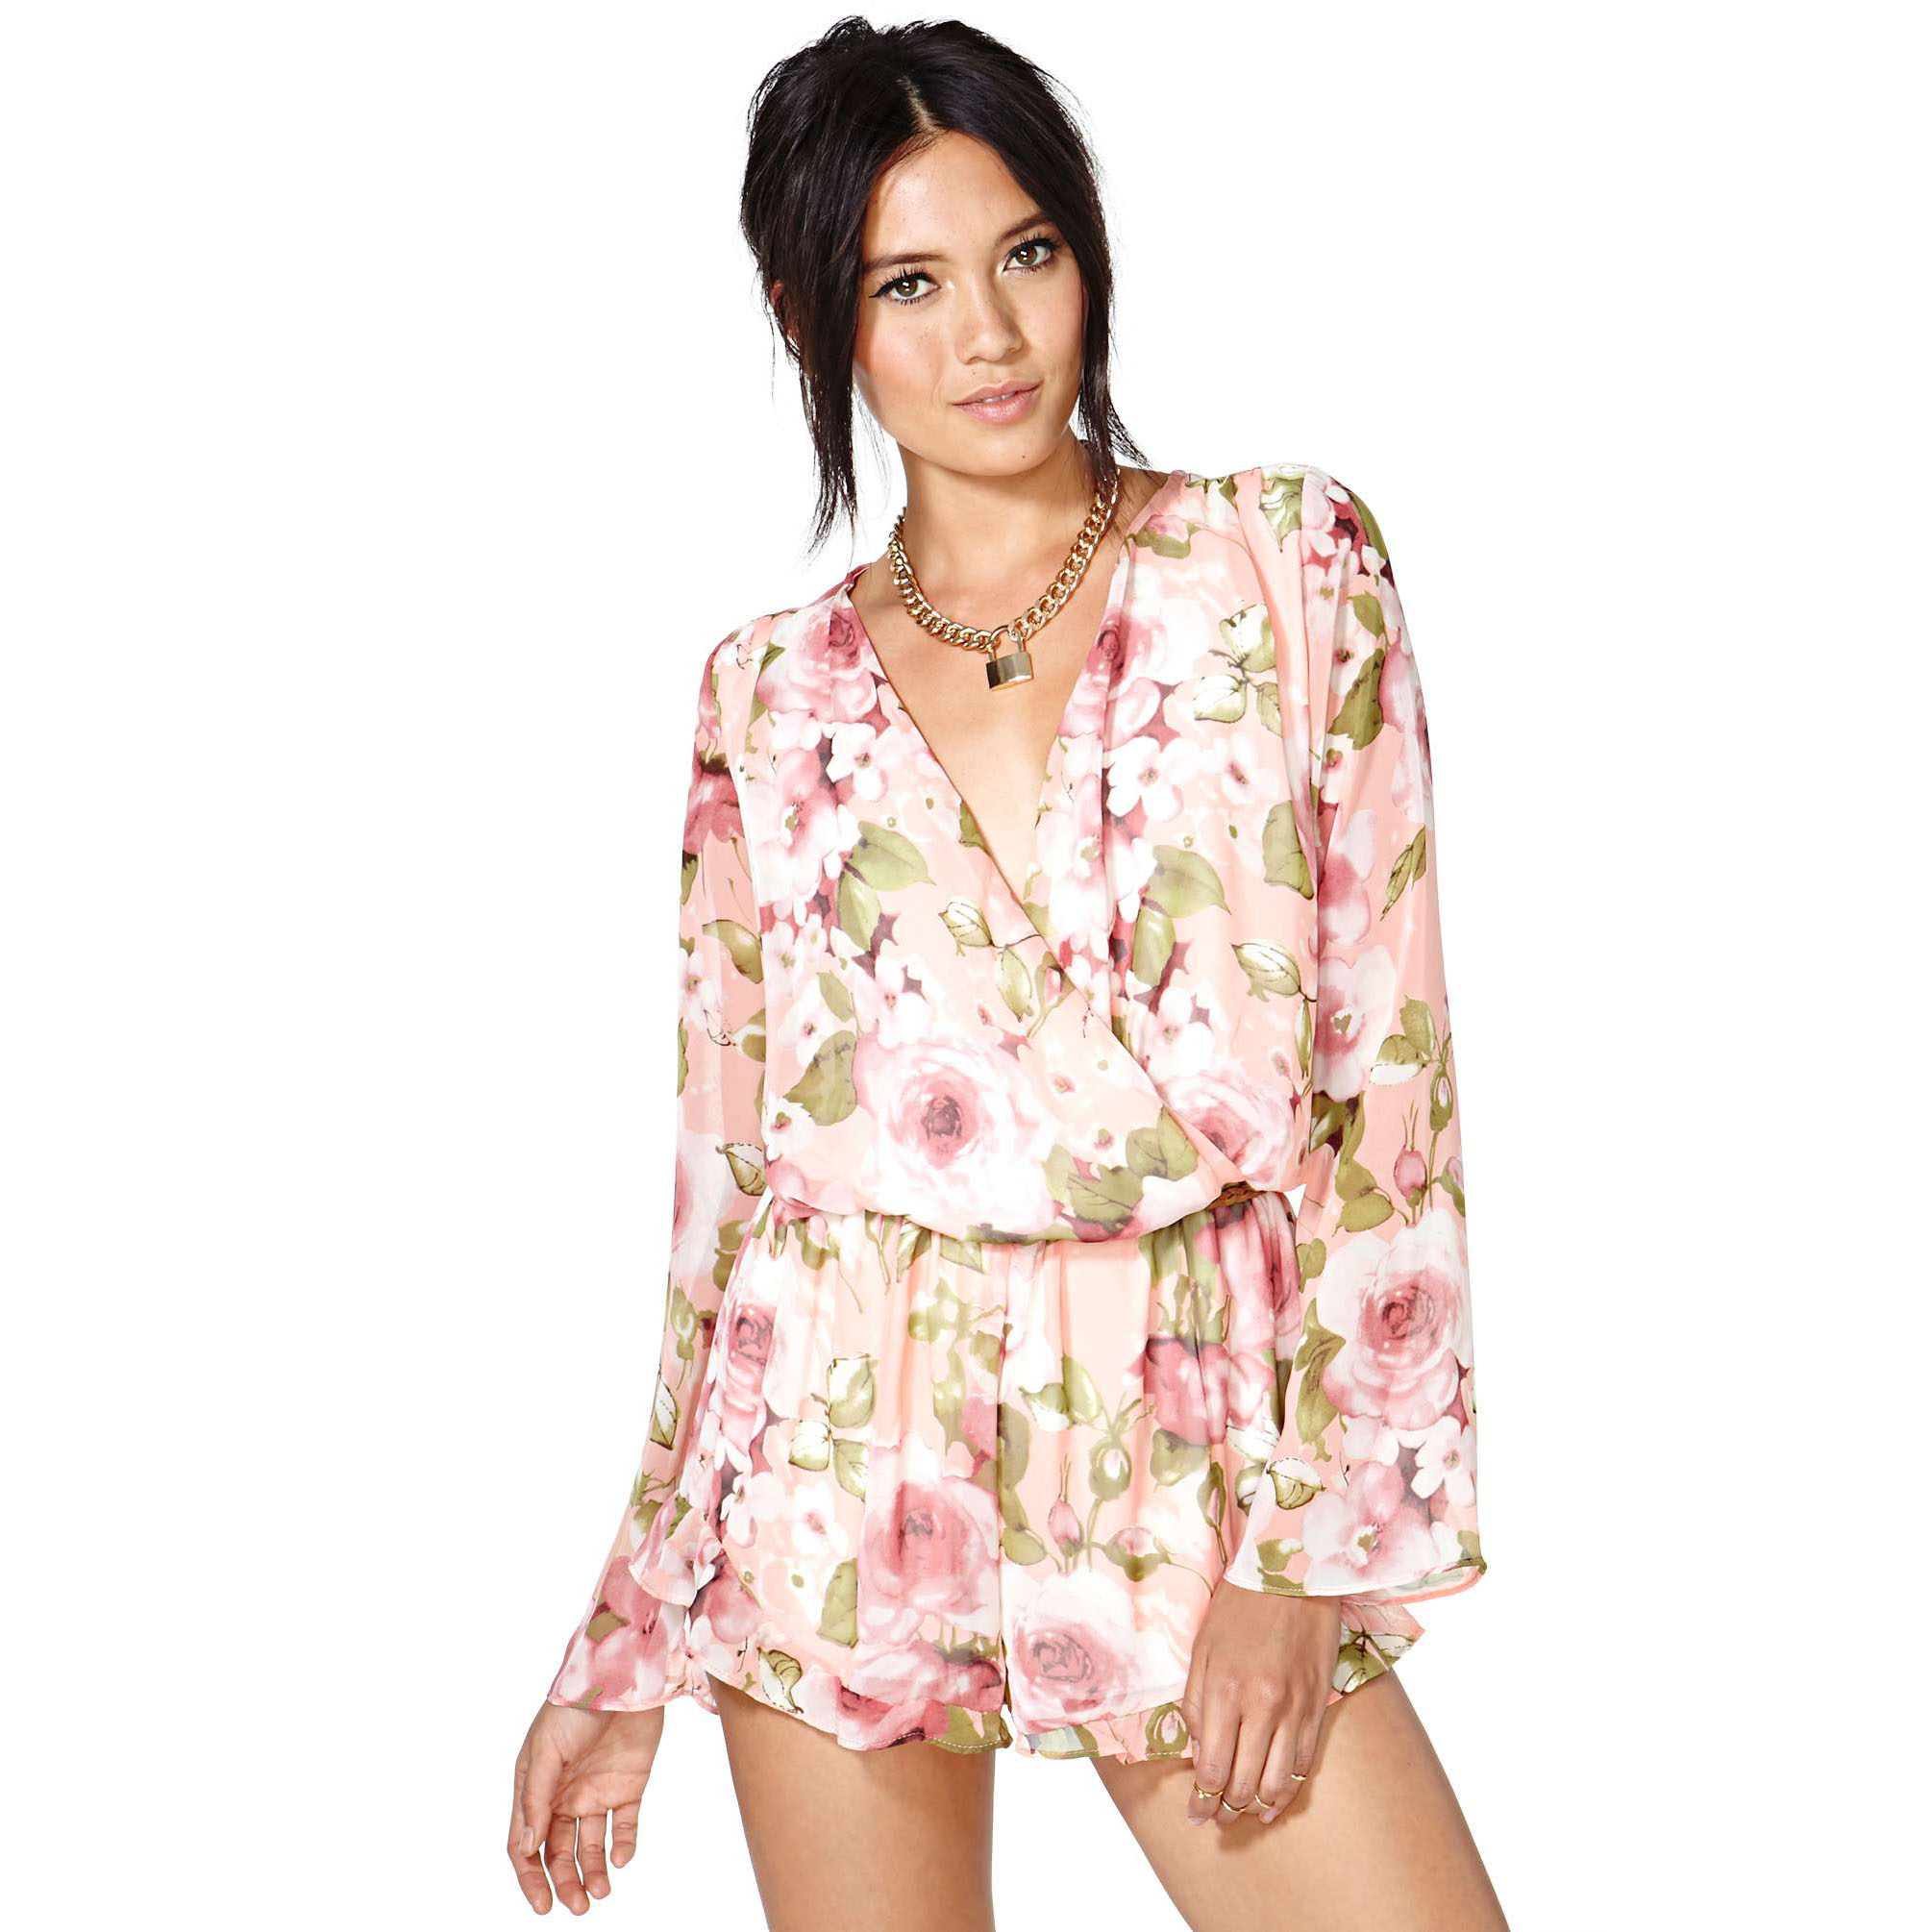 2014 Summer Fashion flower print chiffon  deep V neck long sleeve Shirt & Shorts jumpsuit Jumpsuits-inJumpsuits & Rompers from Apparel & Accessories on Aliexpress.com